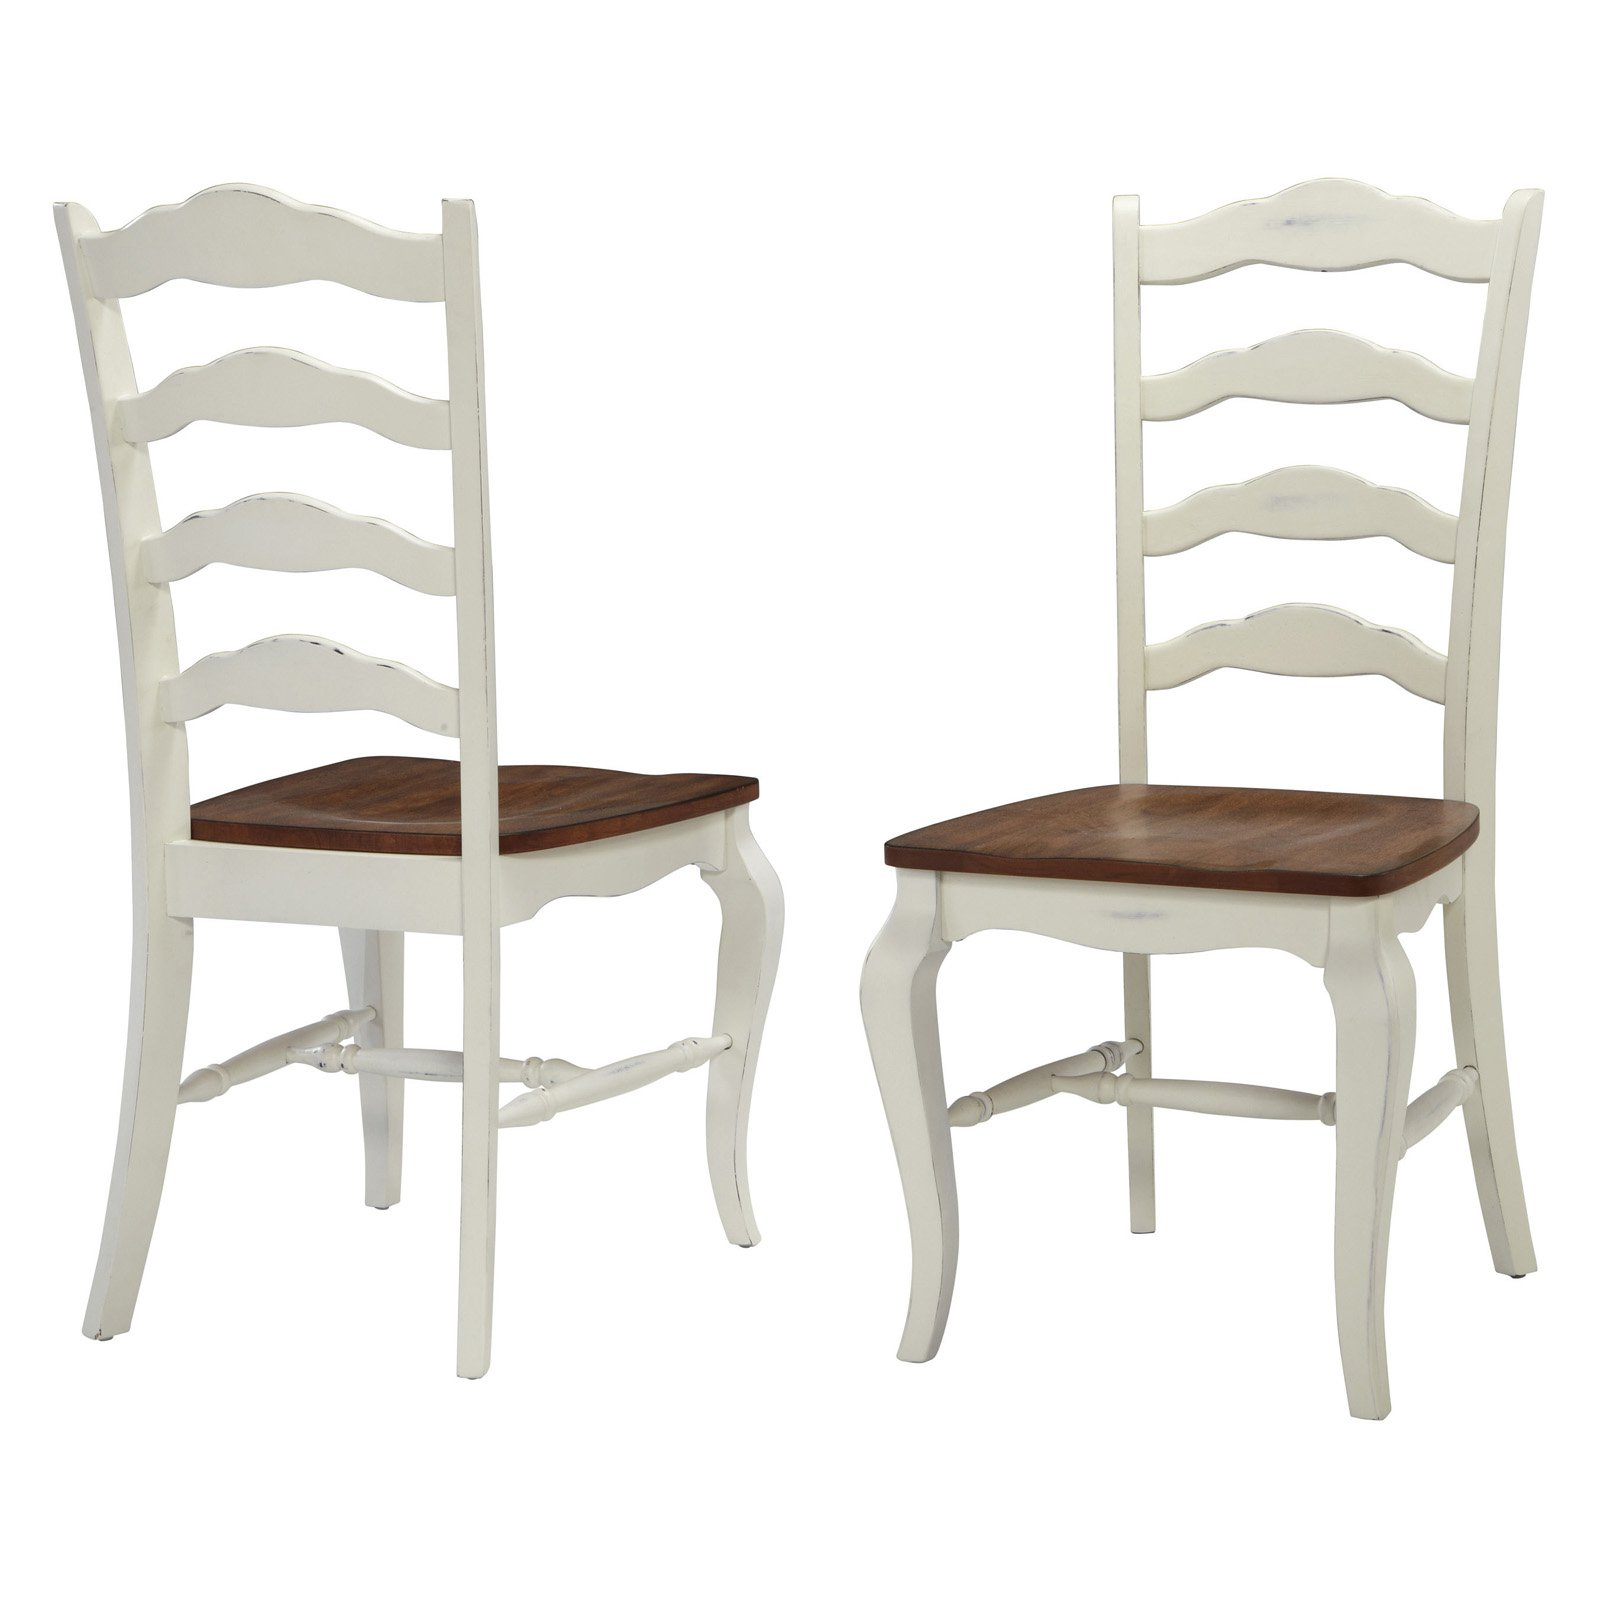 White Wooden Dining Chairs Home Styles French Countryside 2 Piece Oak Dining Chair Set Off White